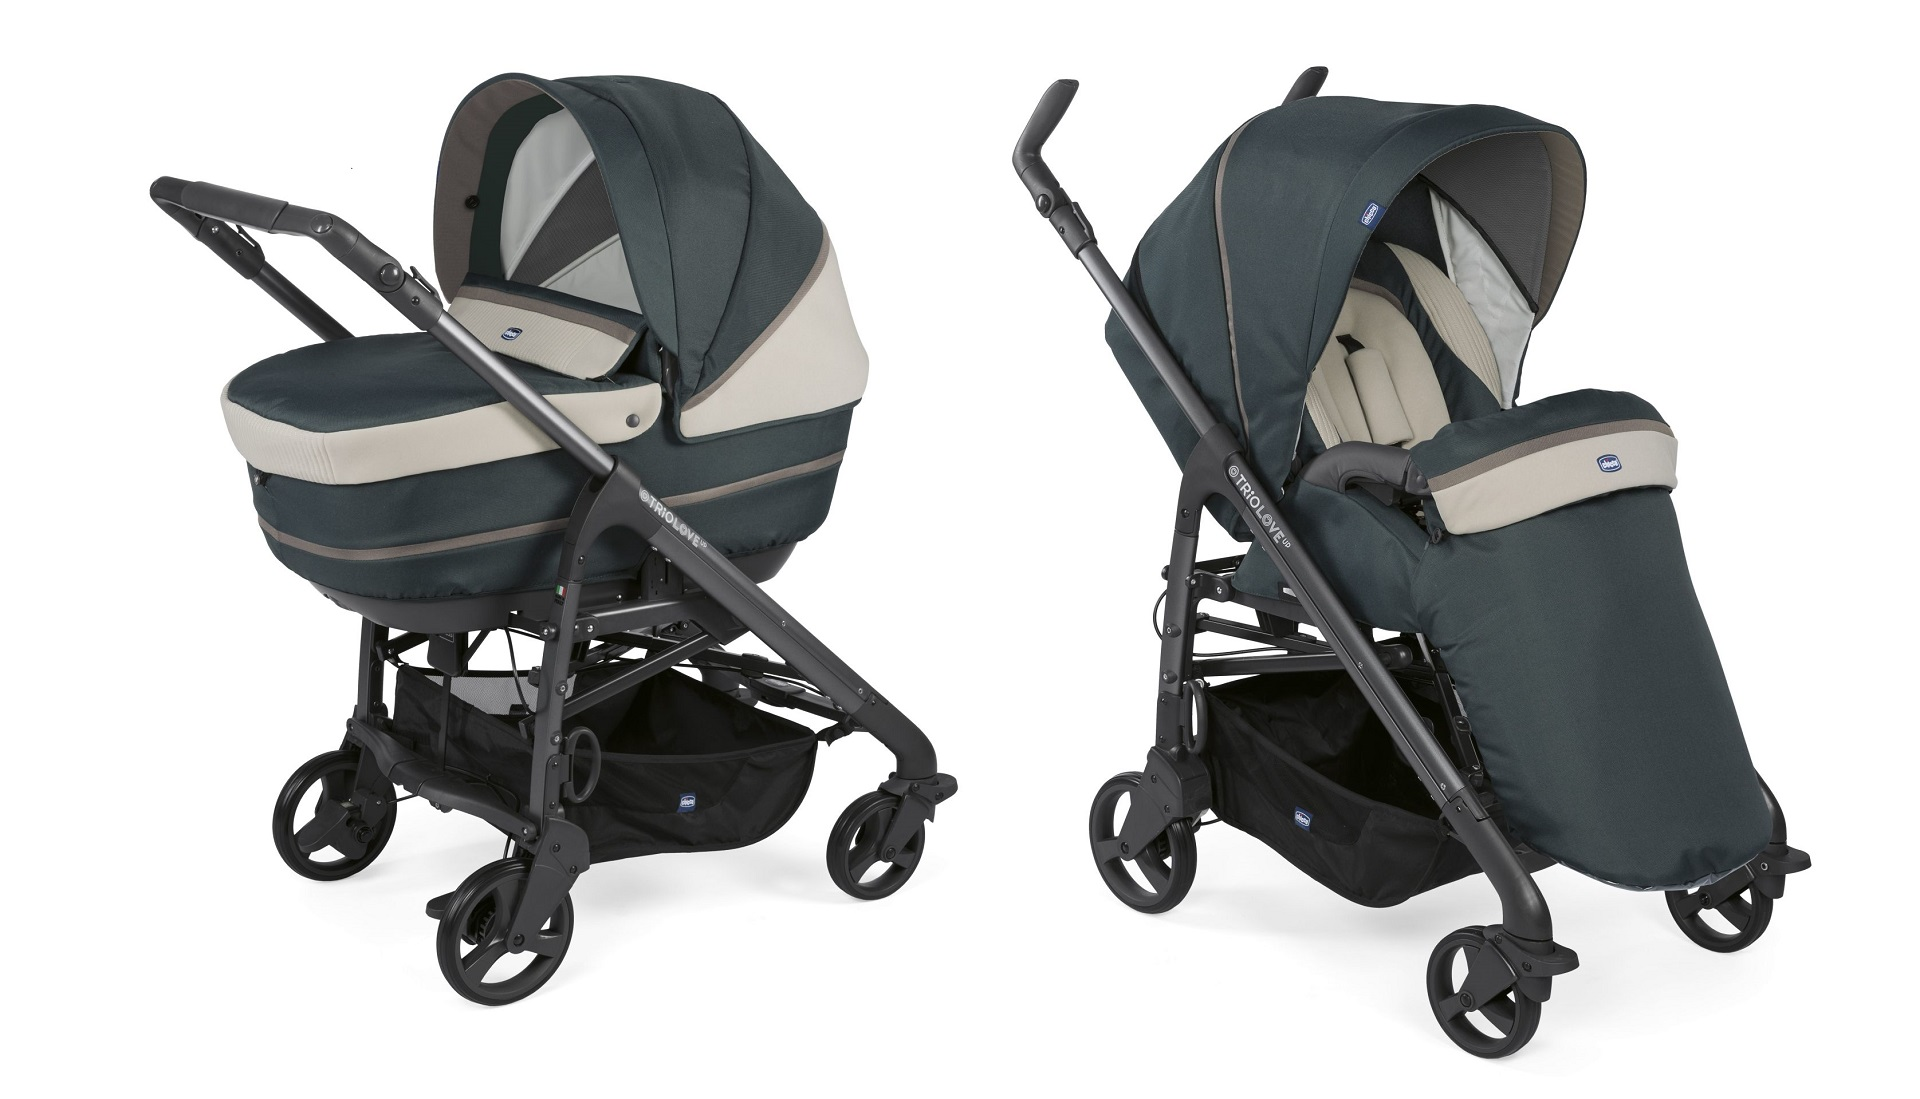 chicco kinderwagen duo love up 2018 wood buy at kidsroom strollers. Black Bedroom Furniture Sets. Home Design Ideas